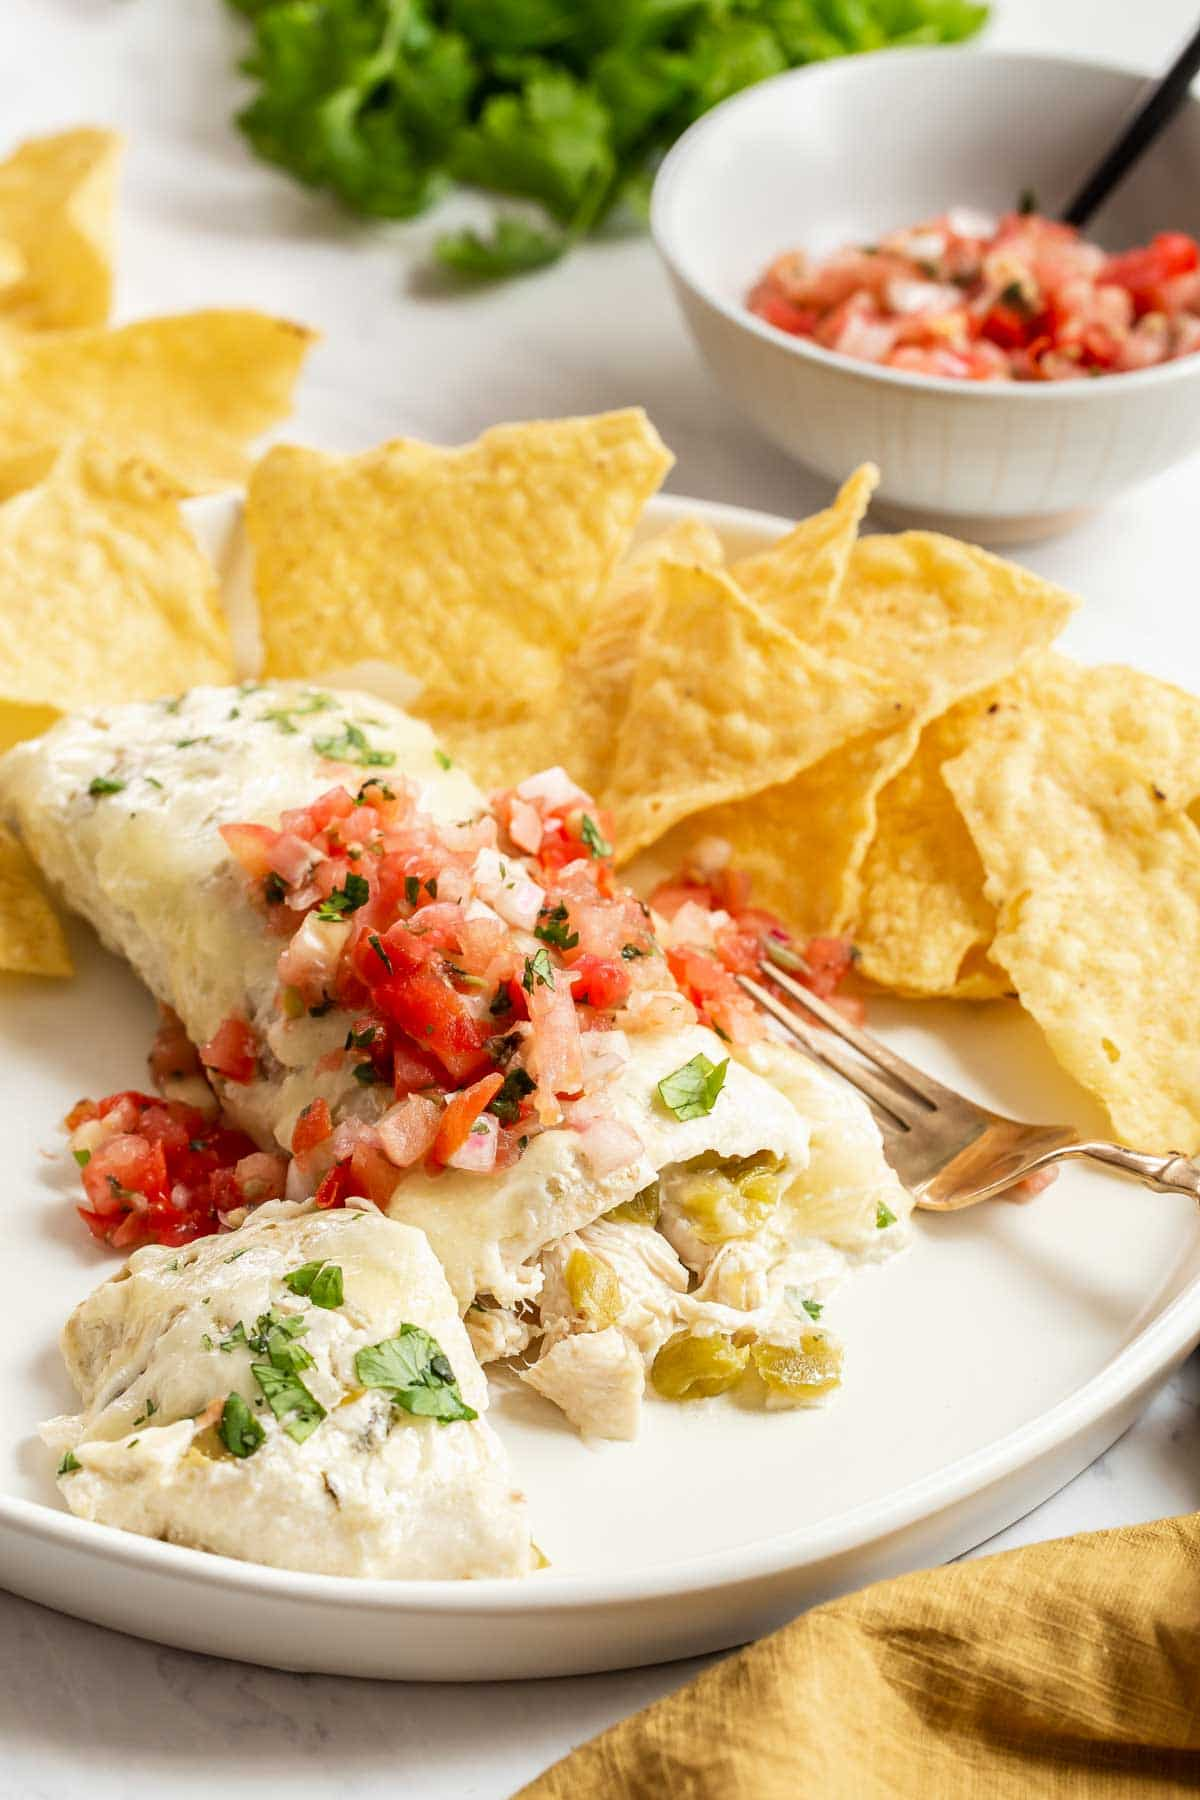 Creamy chicken enchiladas on plate with chips.